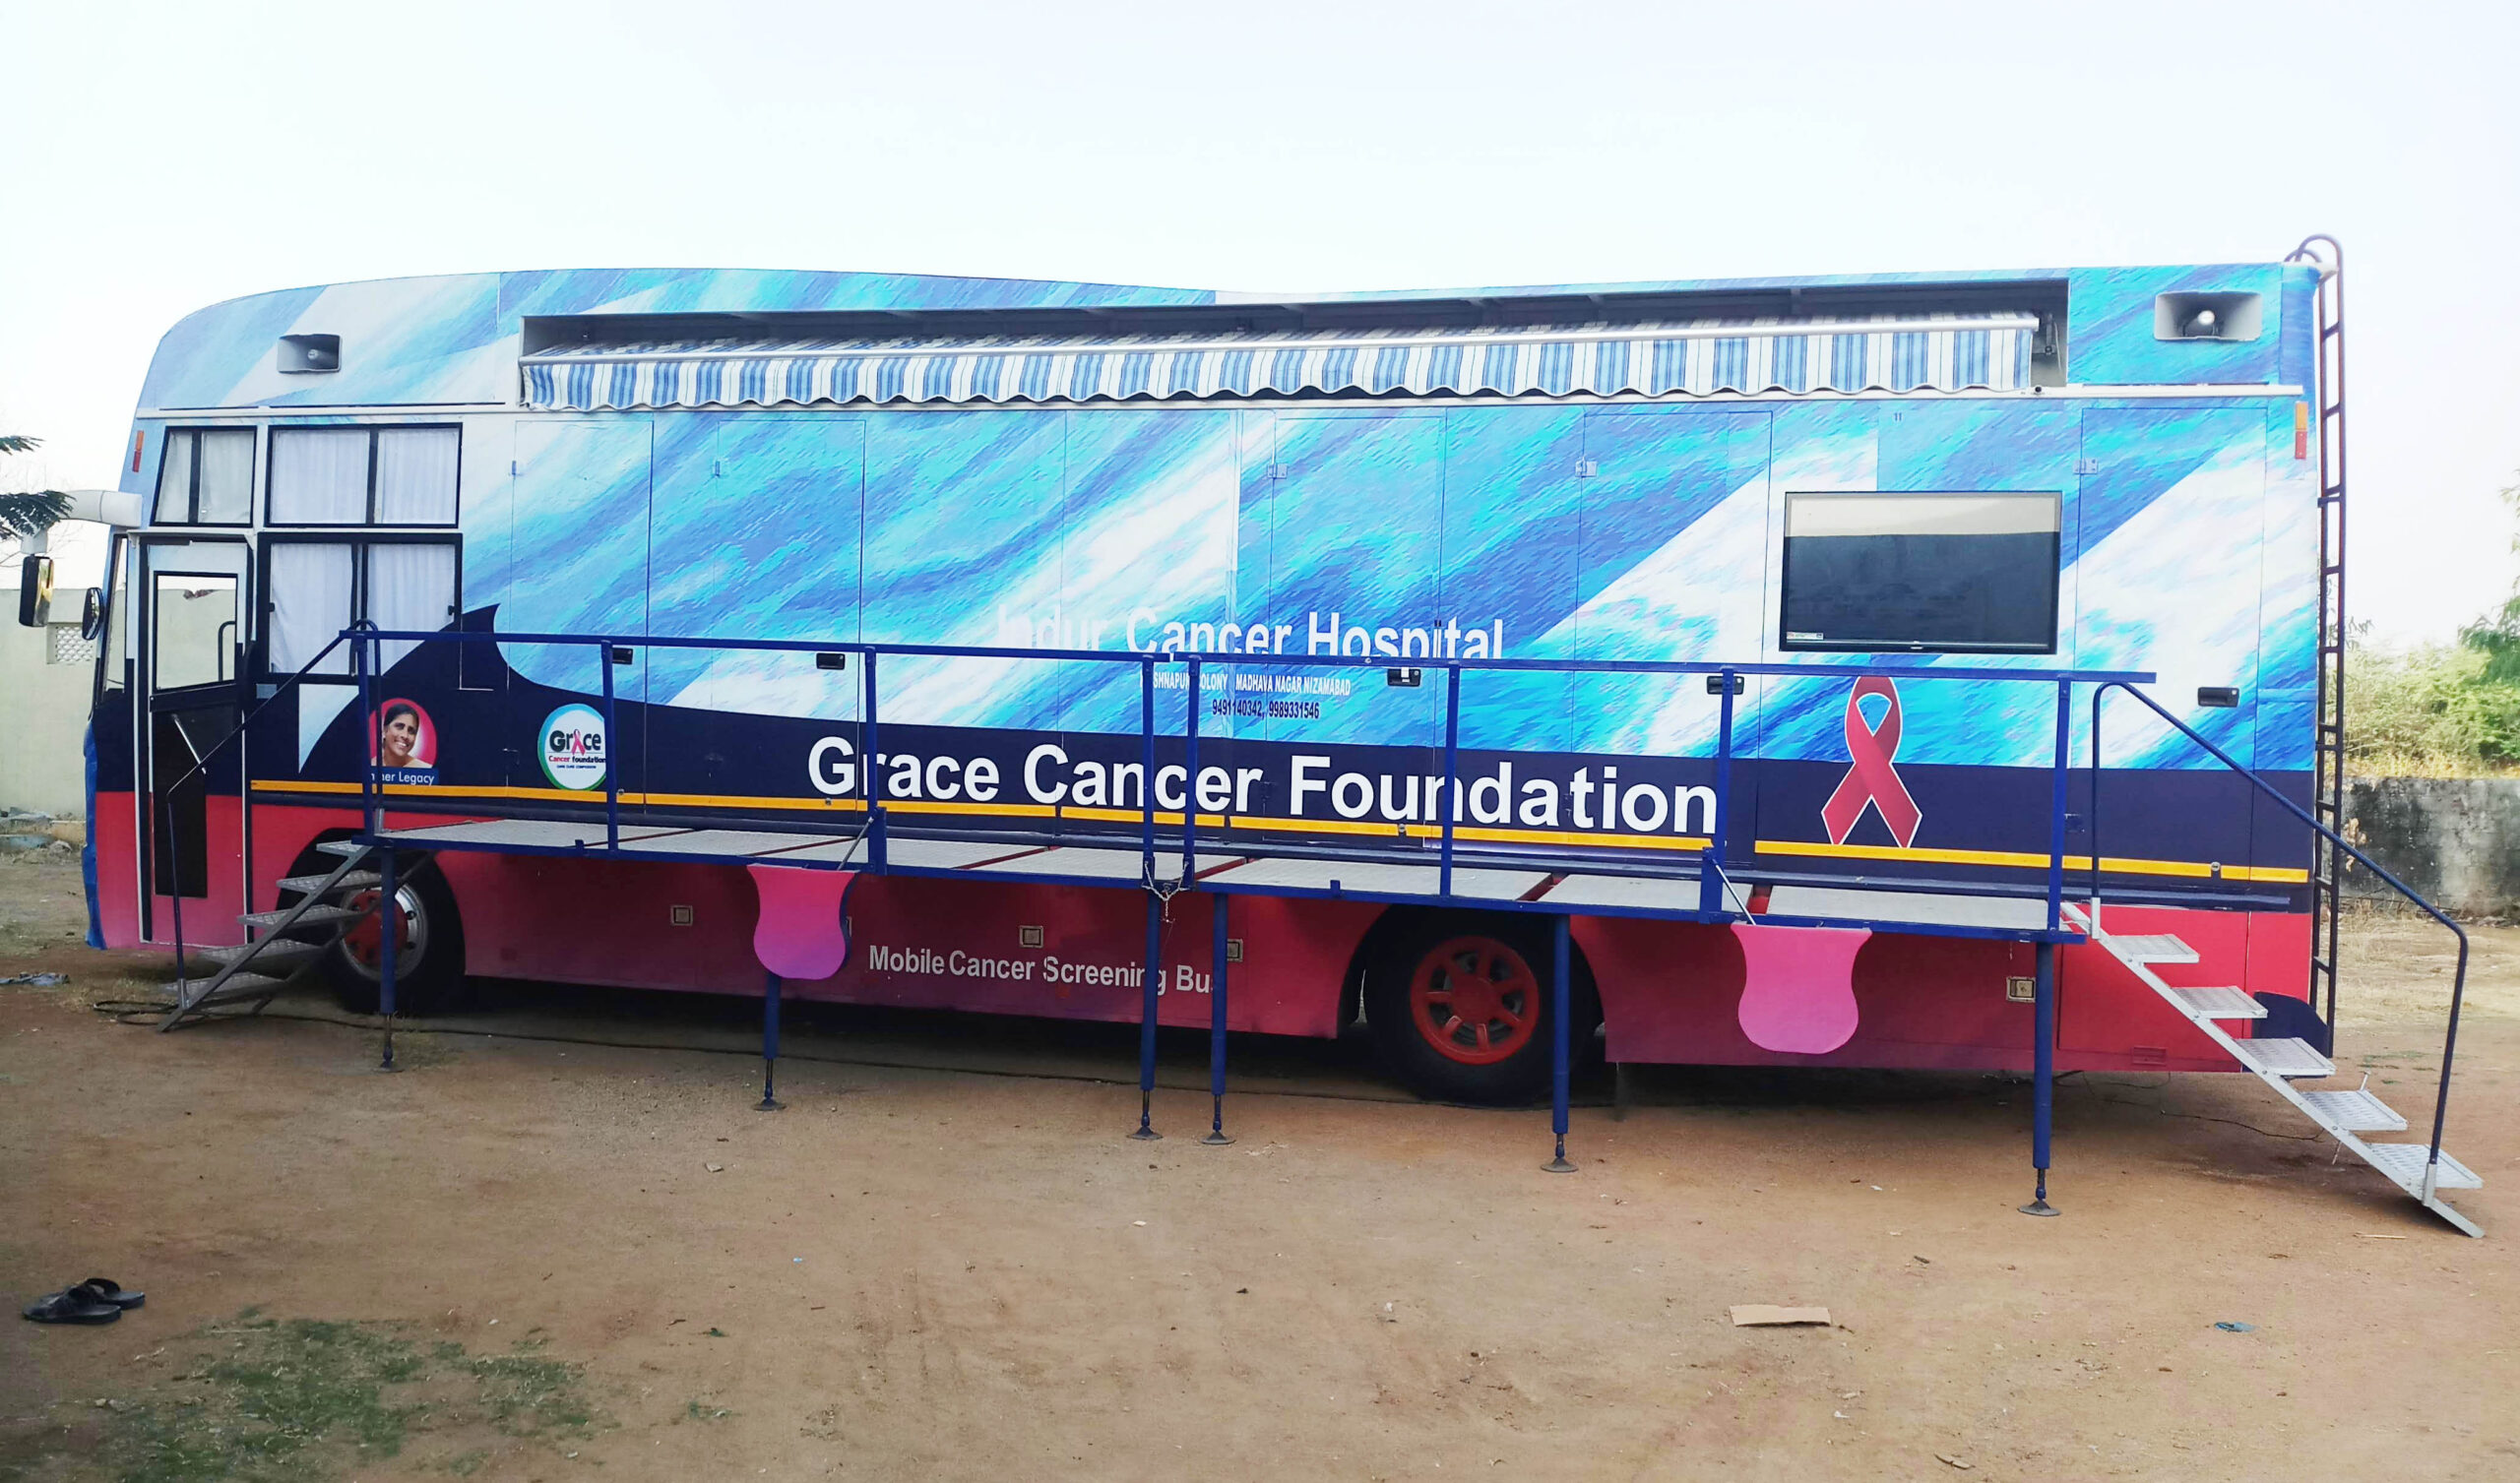 Grace Cancer Foundation & Indur Cancer Hospital, along with Govt. of Telangana, to screen the Nizamabad population for Cancer!